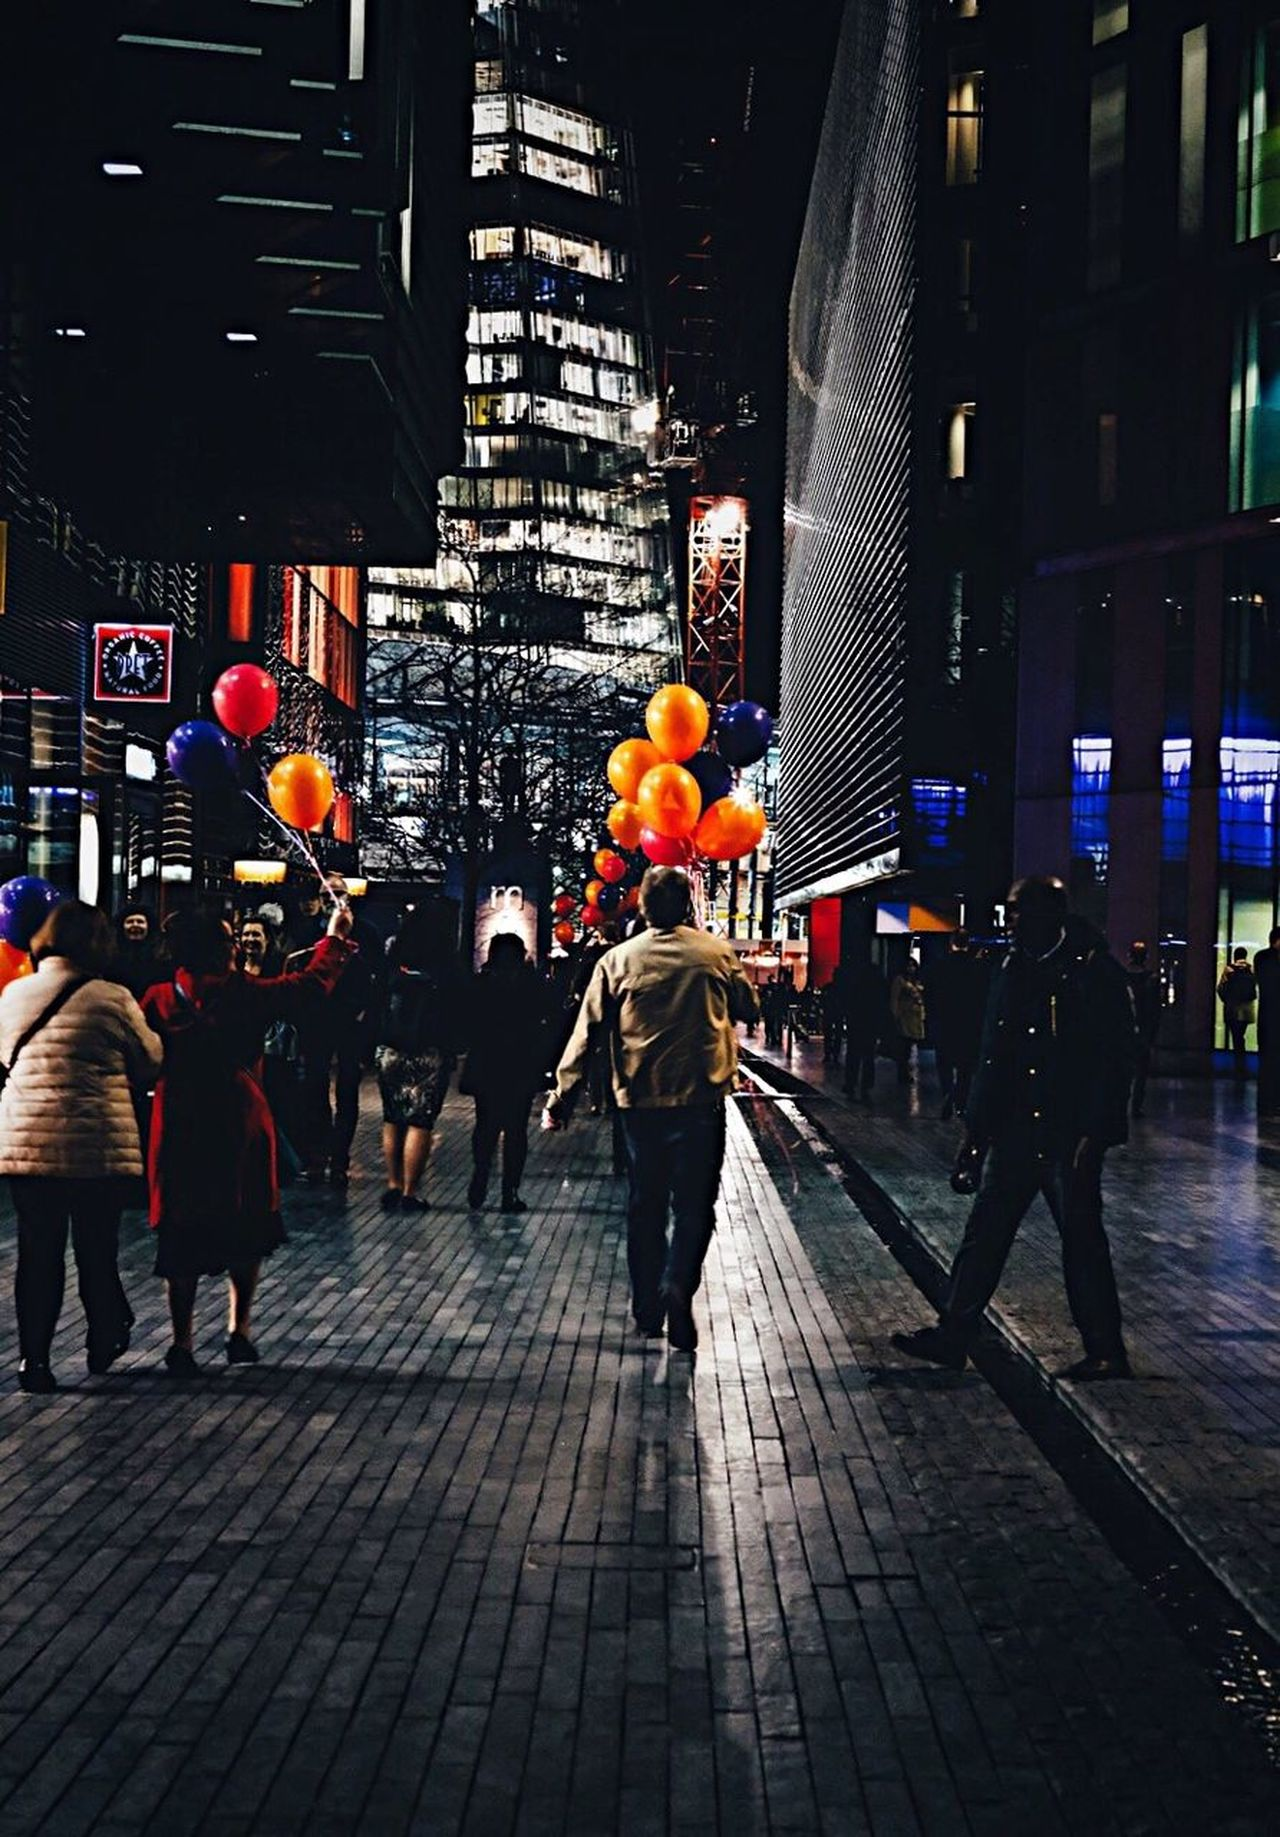 EyeEm LOST IN London The Shard The Shard, London Man with Balloons Nightphotography Night Photography Balloons London Architecture City Built Structure Illuminated Night Building Exterior Street Men Large Group Of People City Life Outdoors Women Standing Lifestyles Real People Pedestrian Adult People